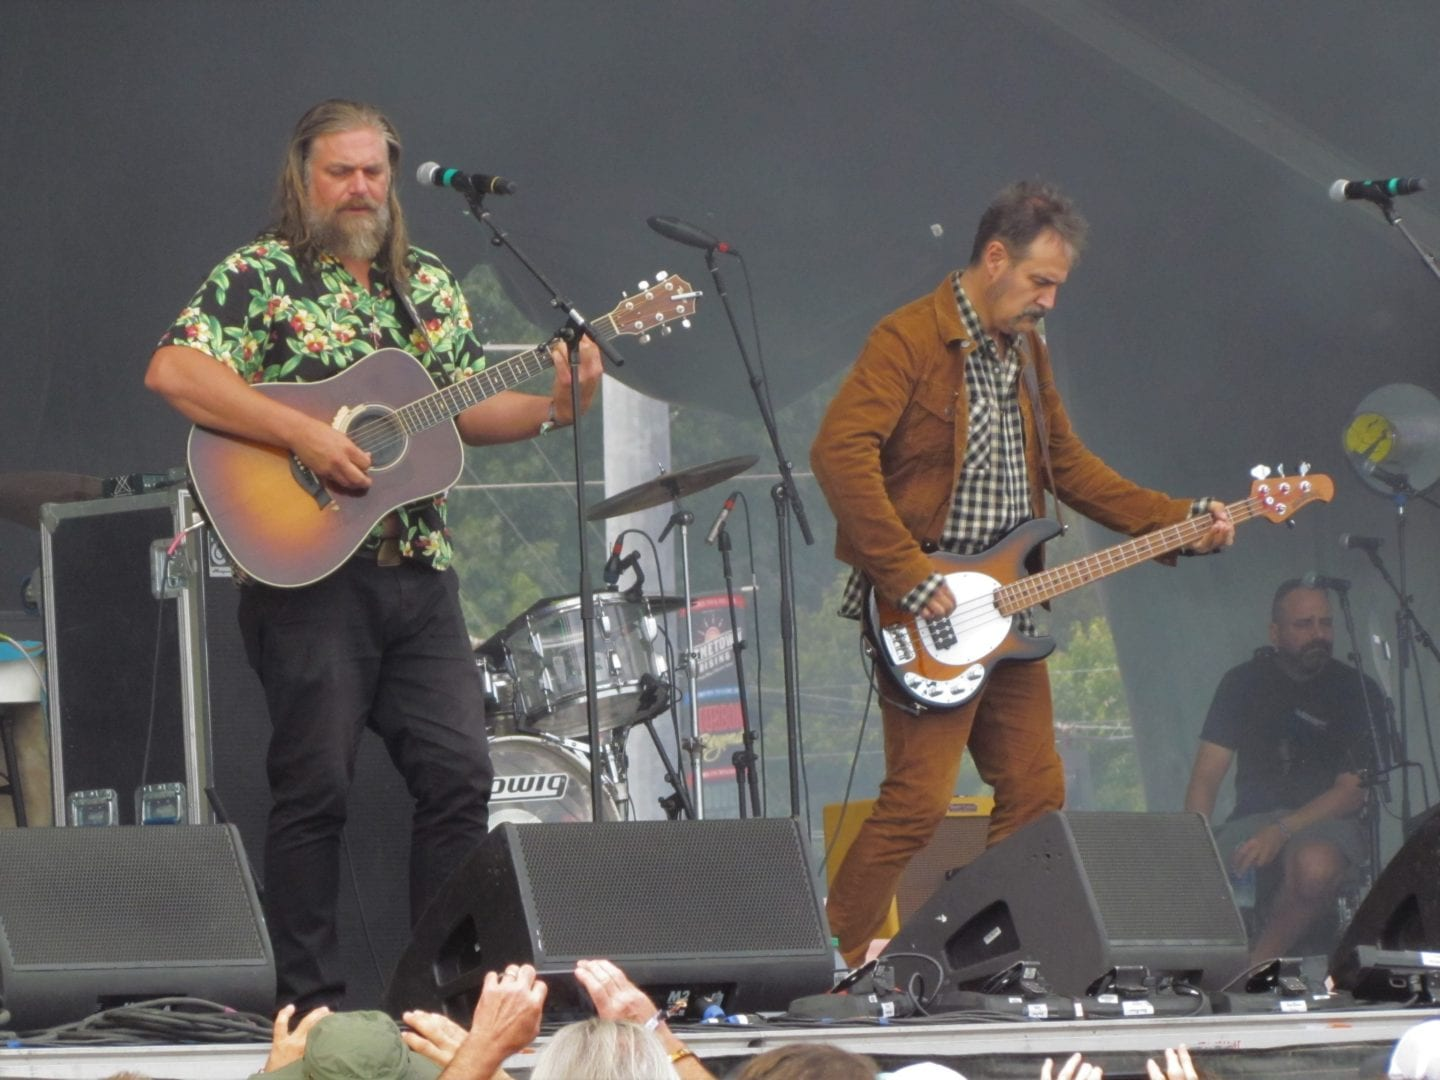 The White Buffalo band on stage